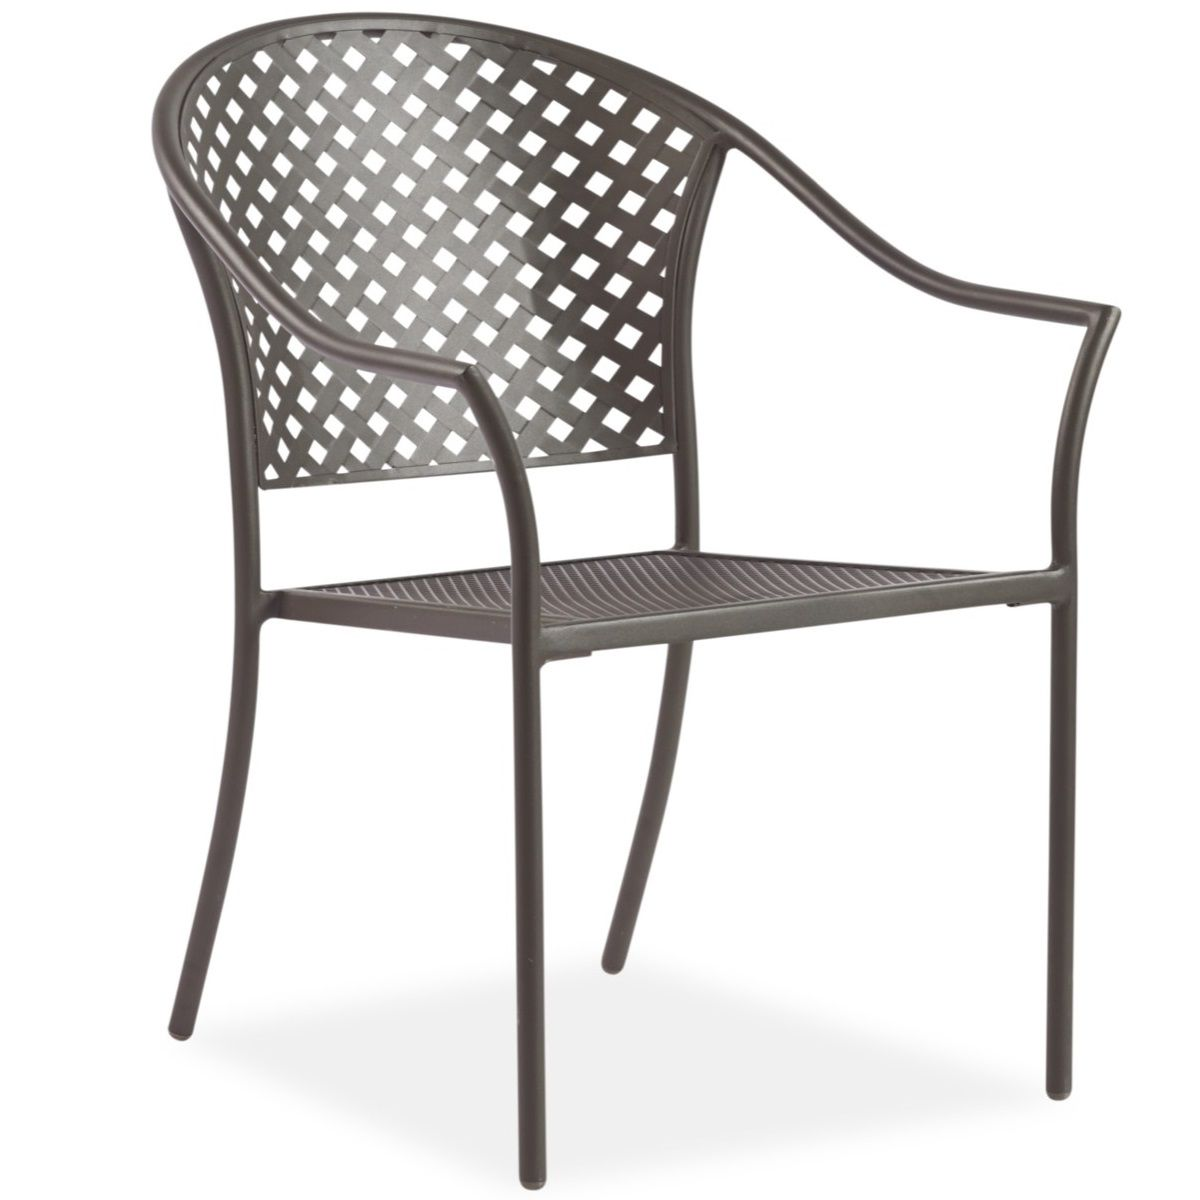 Camarillo Stacking Chair Outdoor Stacking Chairs Outdoor Chair